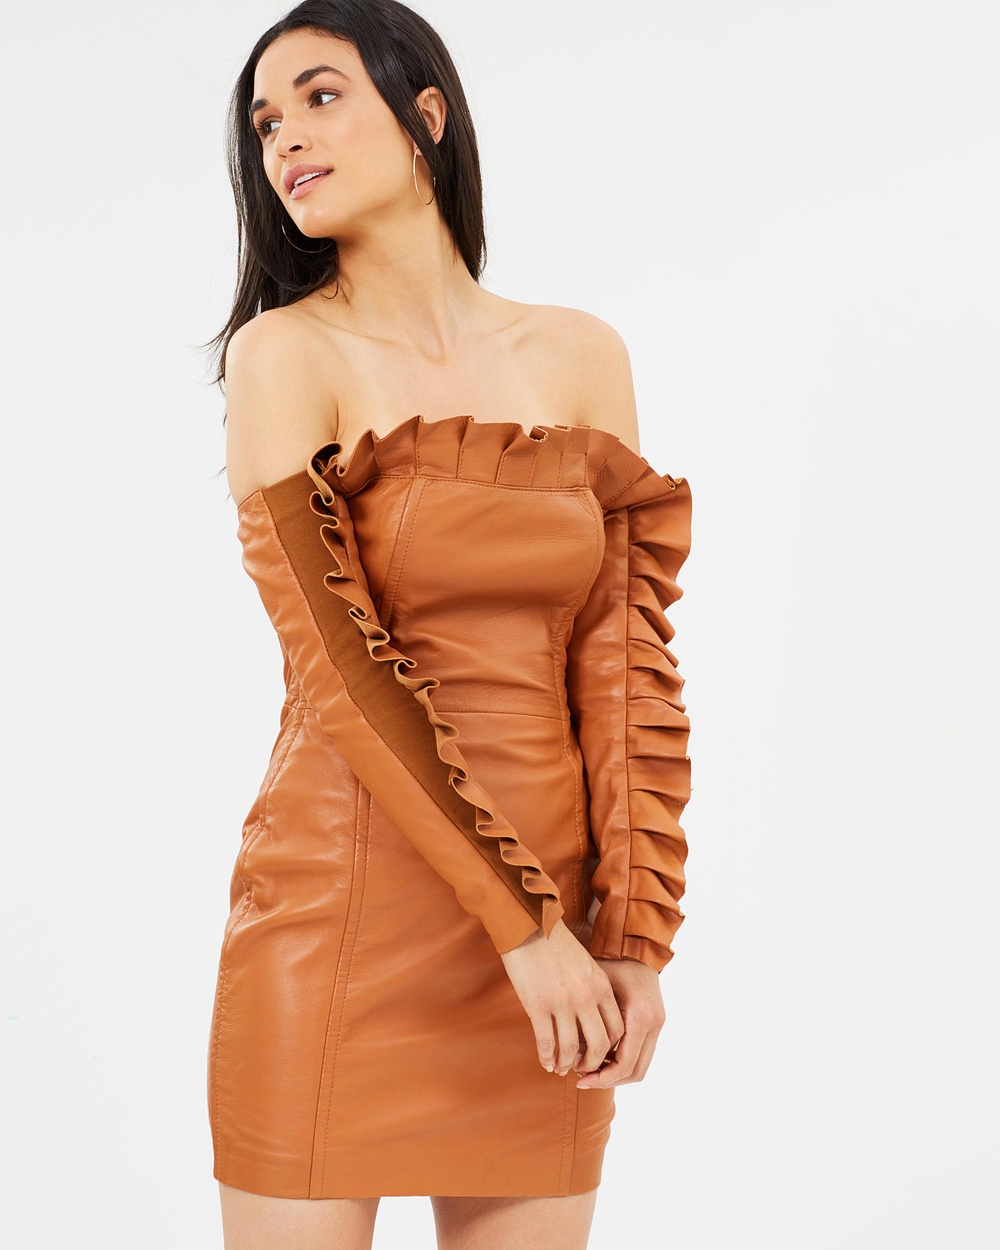 Asilio Sanction Leather Ruffle Dress Dresses Tan Sanction Leather Ruffle Dress